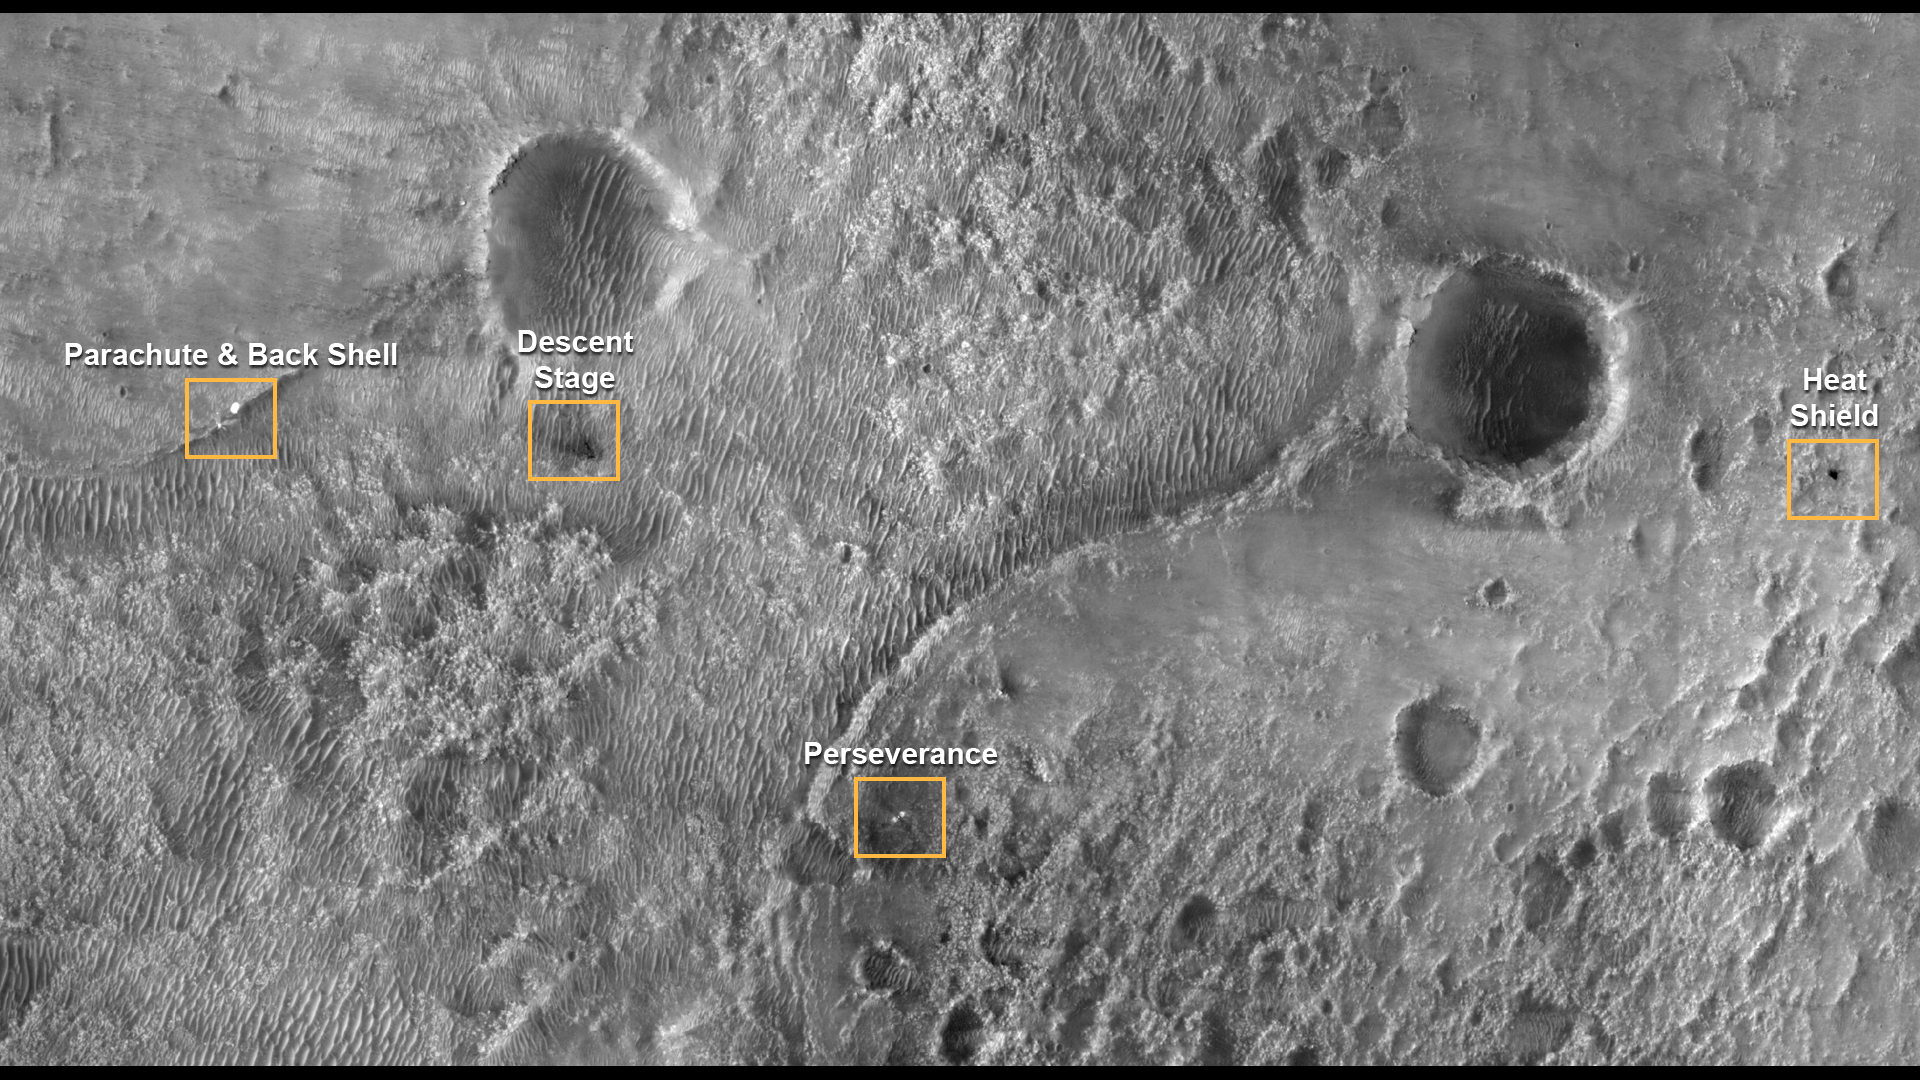 The landing site for the rover.